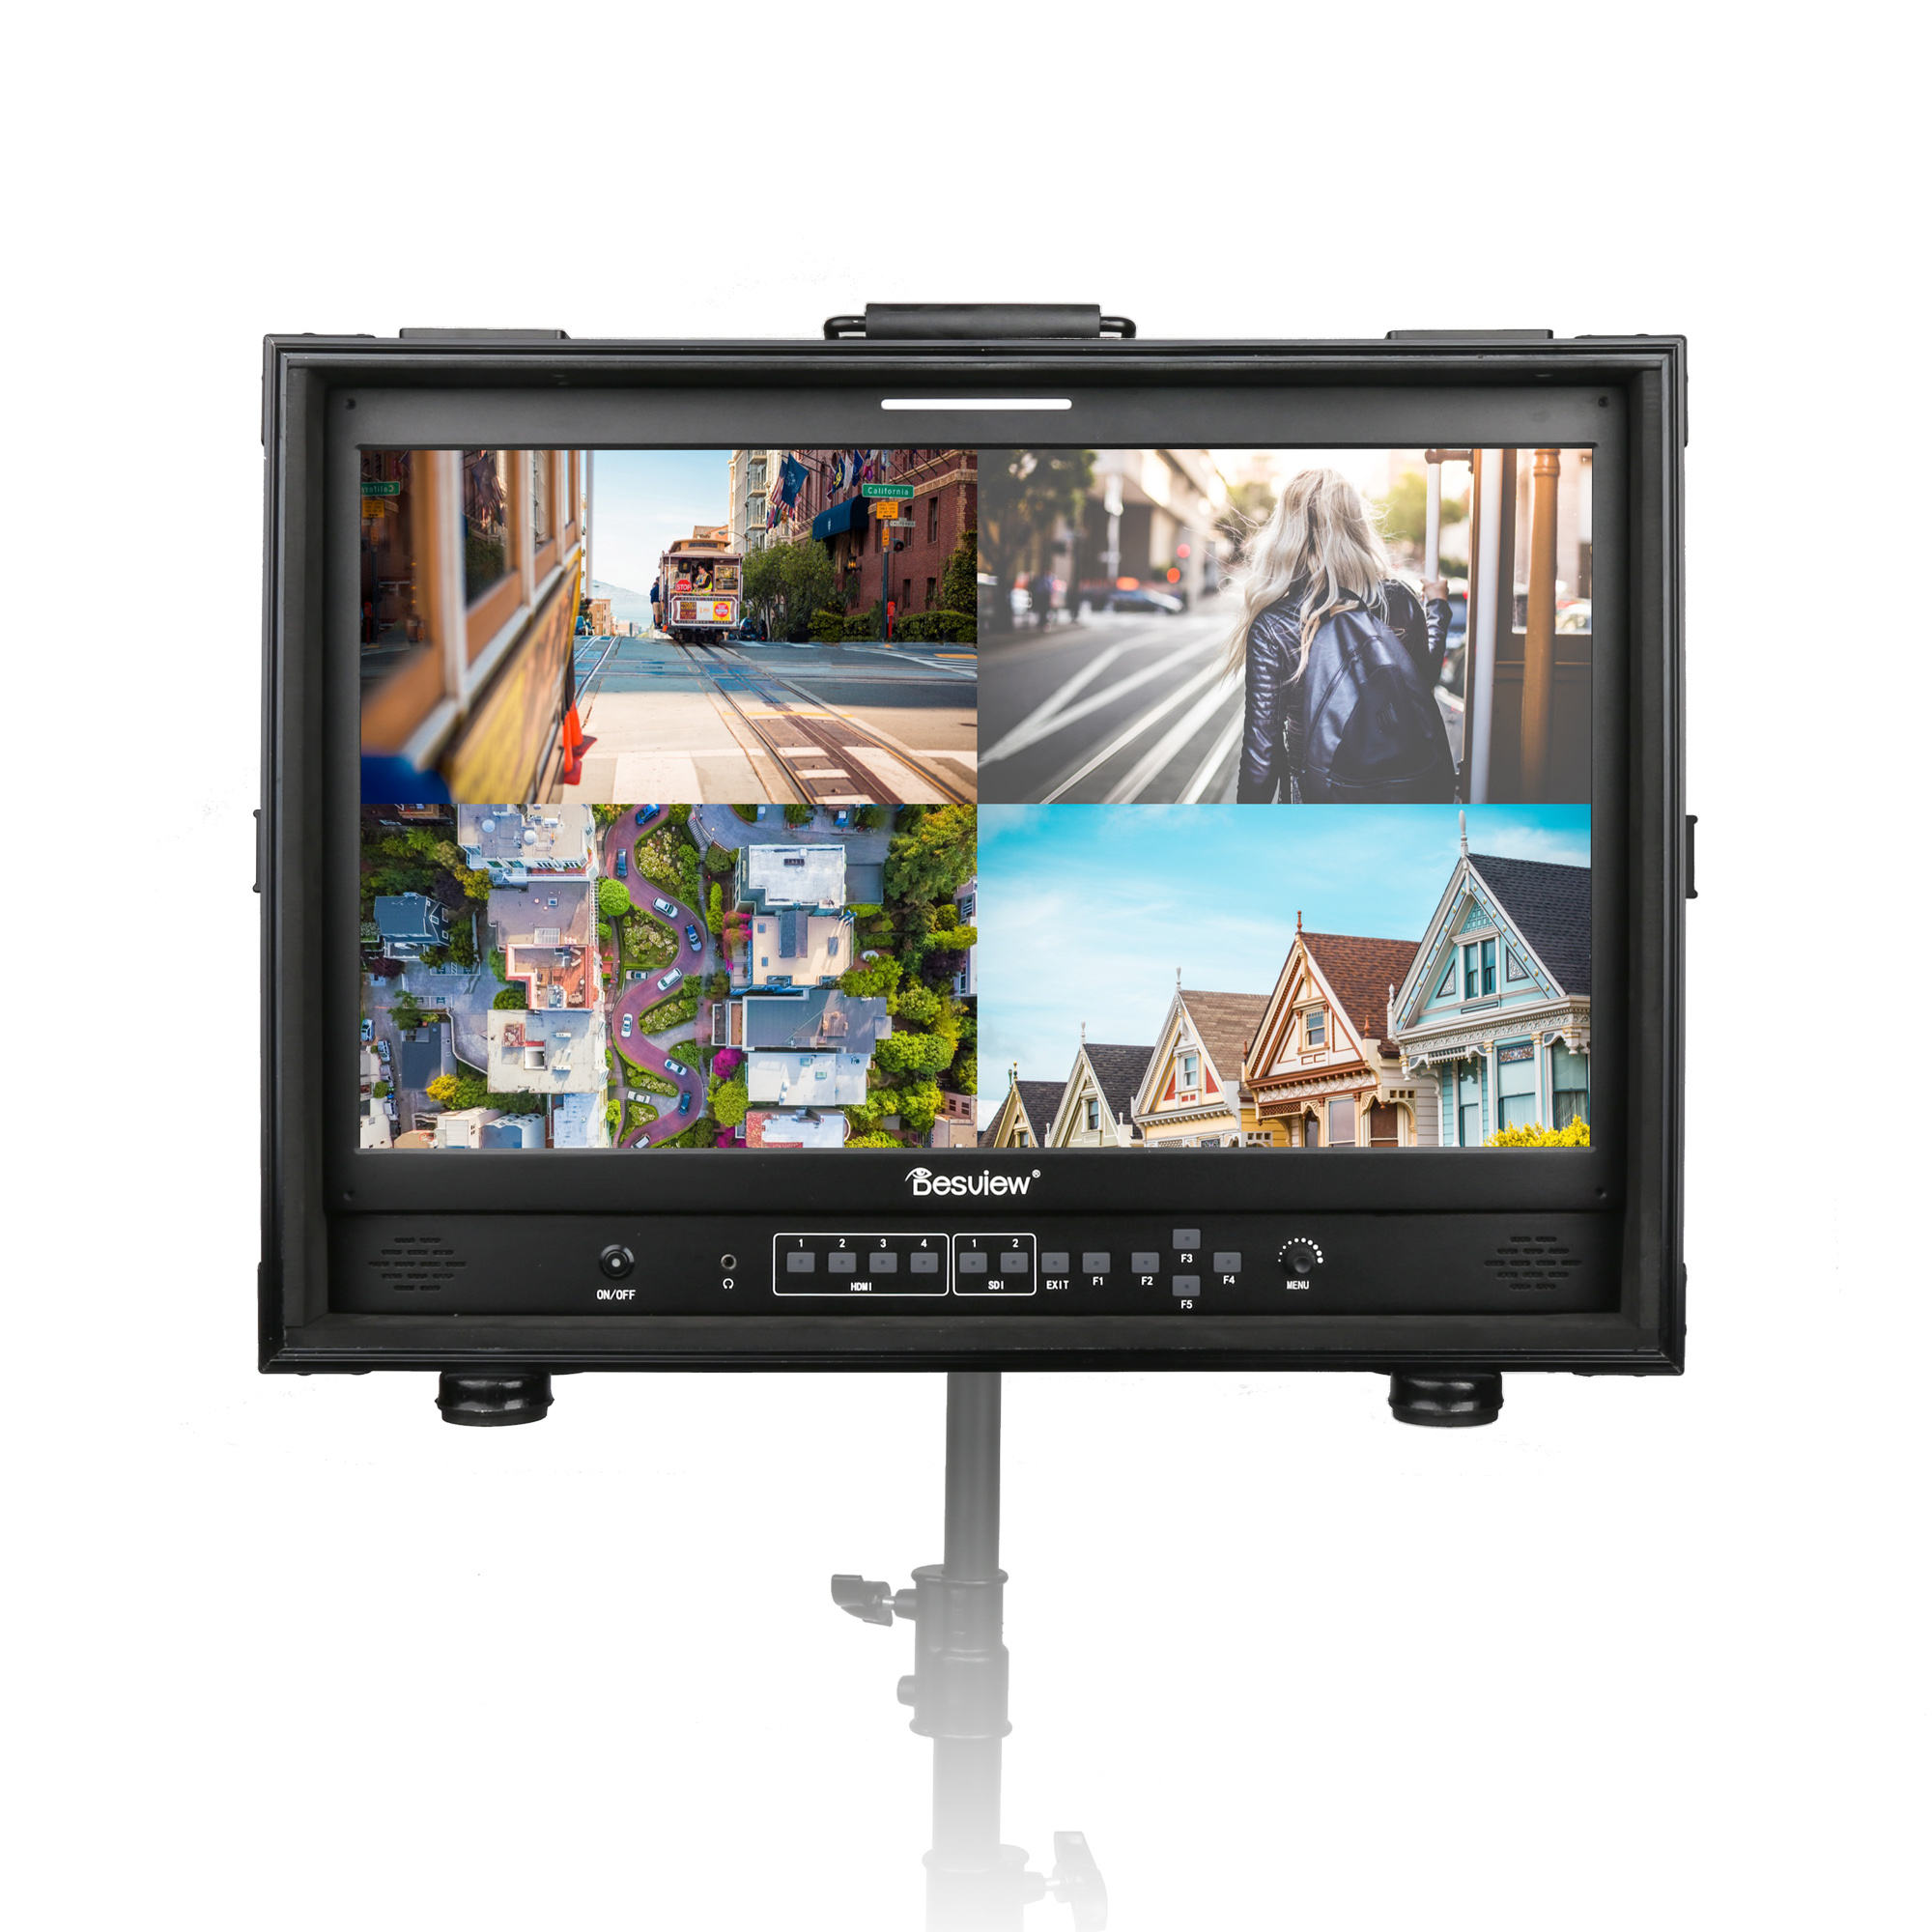 Desview S21-HB 21.5 ''צג מלא HD 1000nits גבוהה בהיר צג 4ch <span class=keywords><strong>HDMI</strong></span> קלט מרובה להציג צג עם HDR/3D-LUT